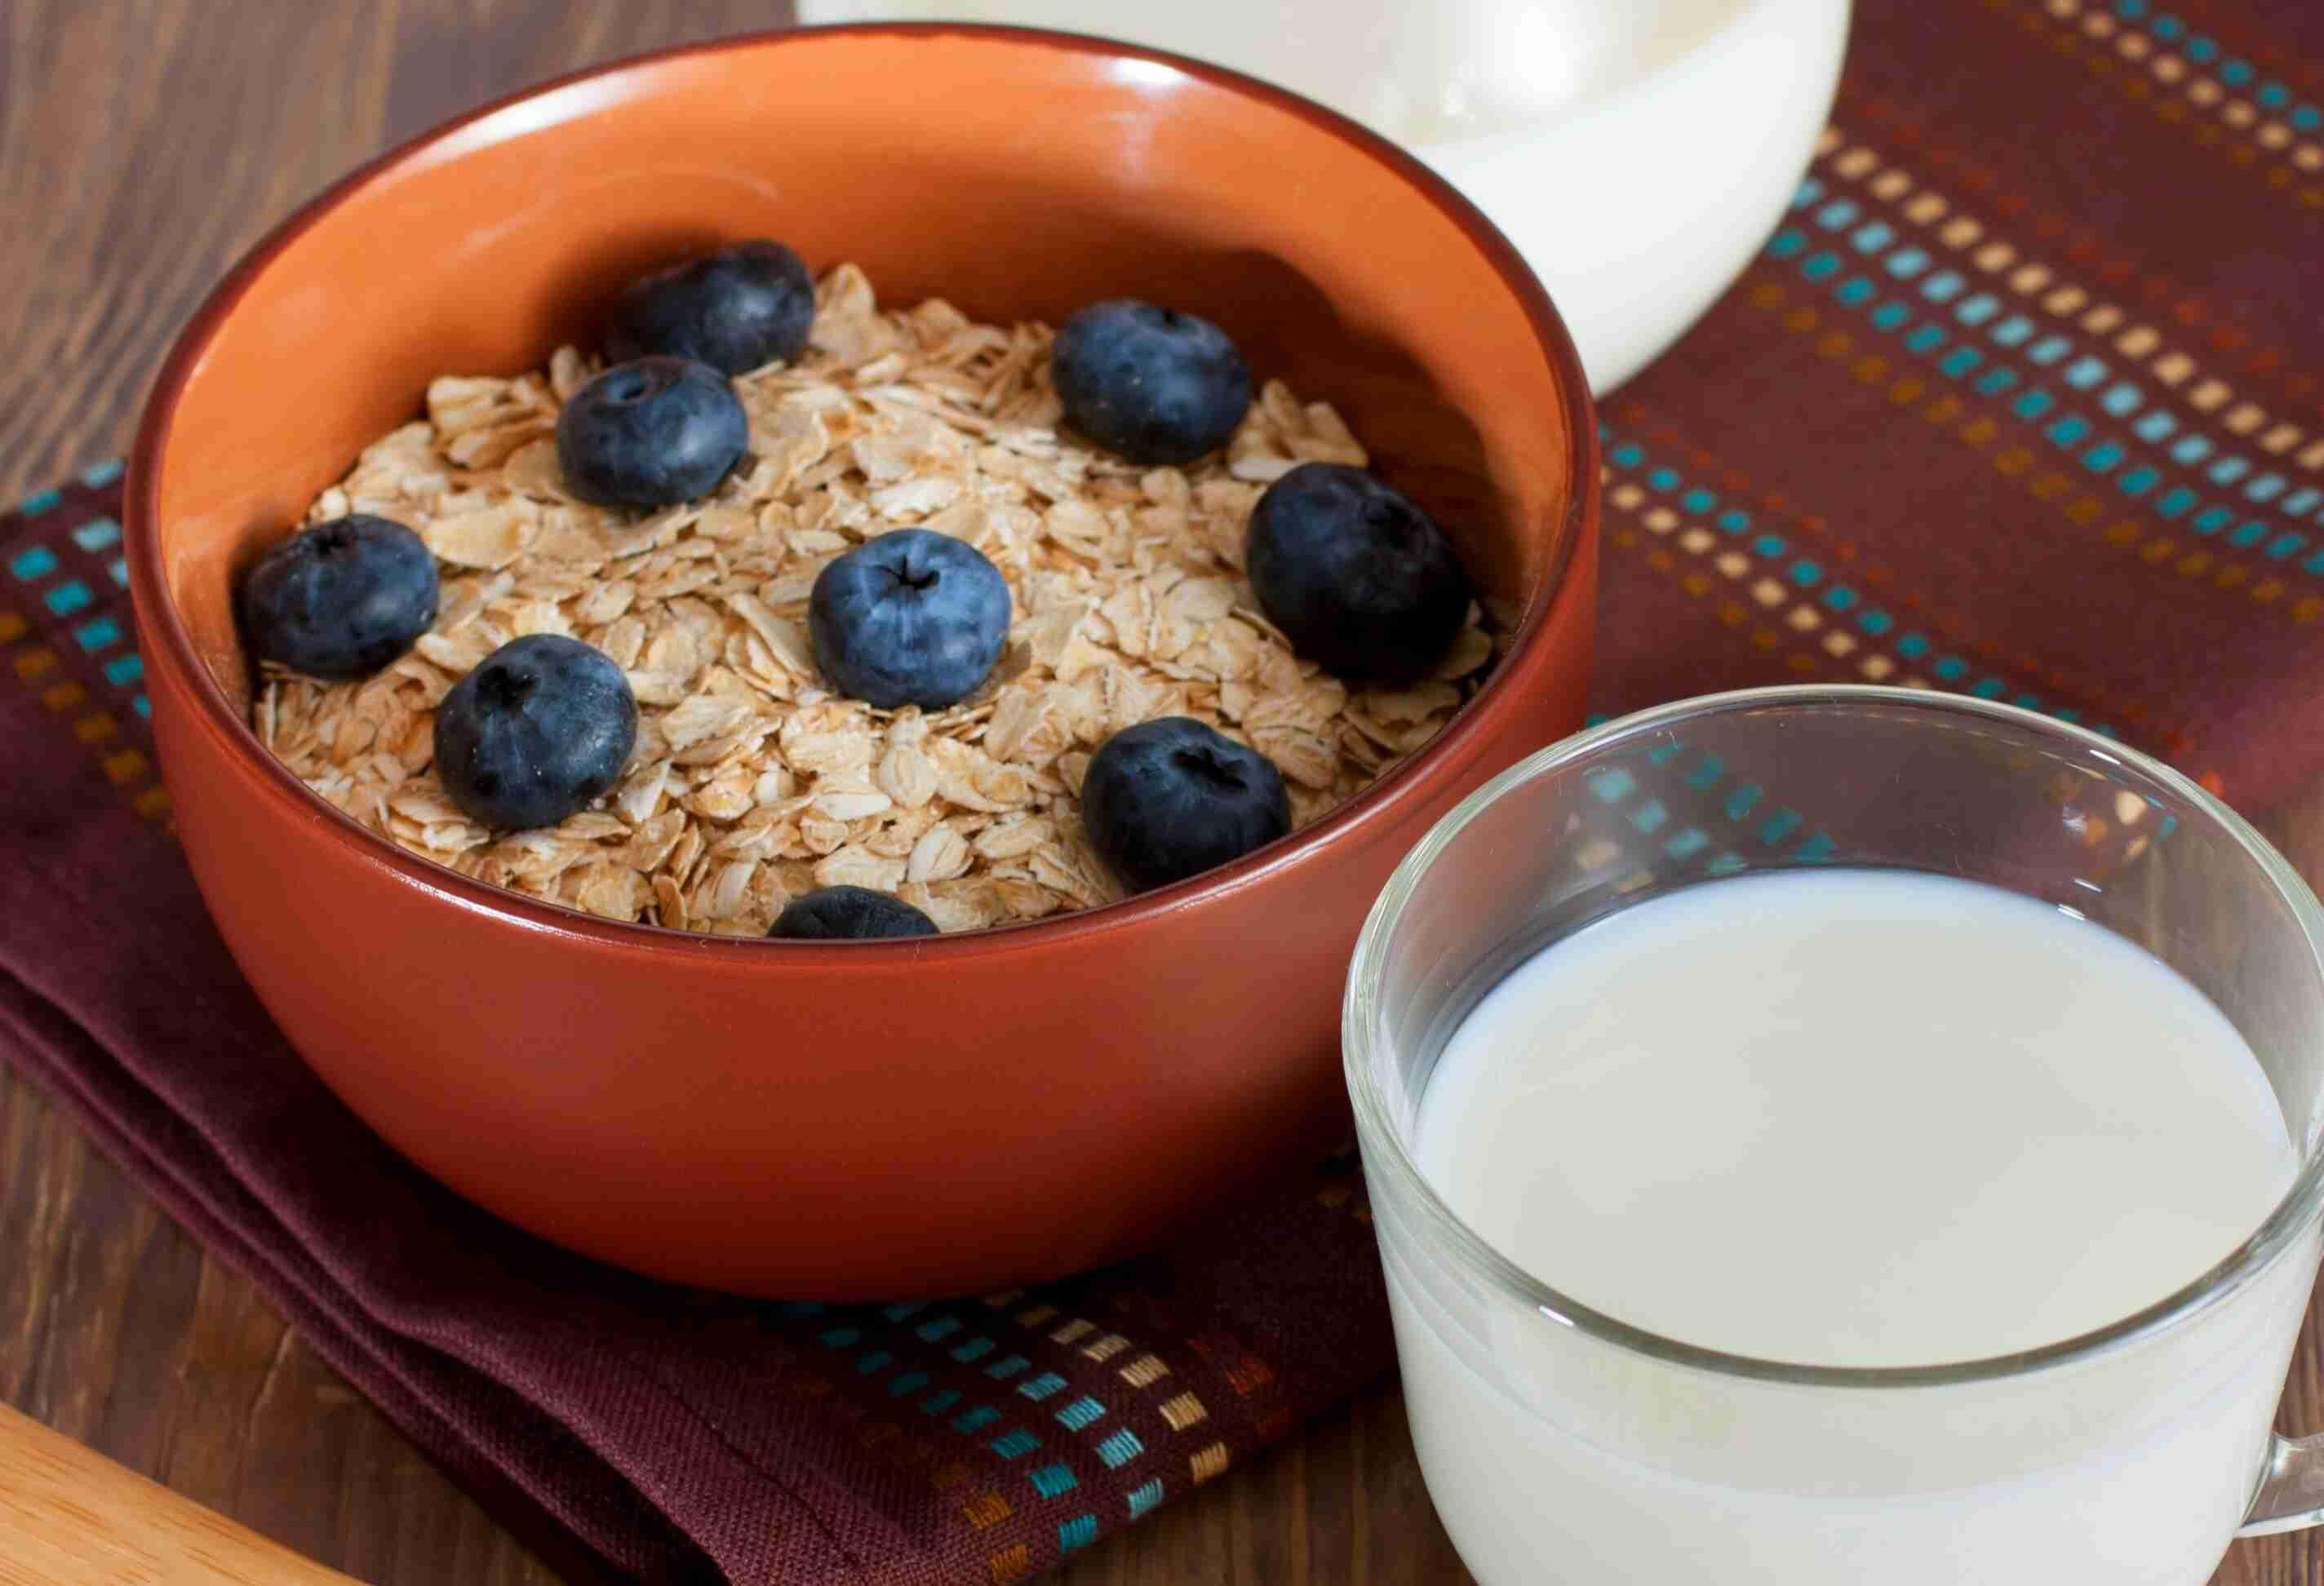 Oatmeal-topped-blueberries-656607-edited.jpg